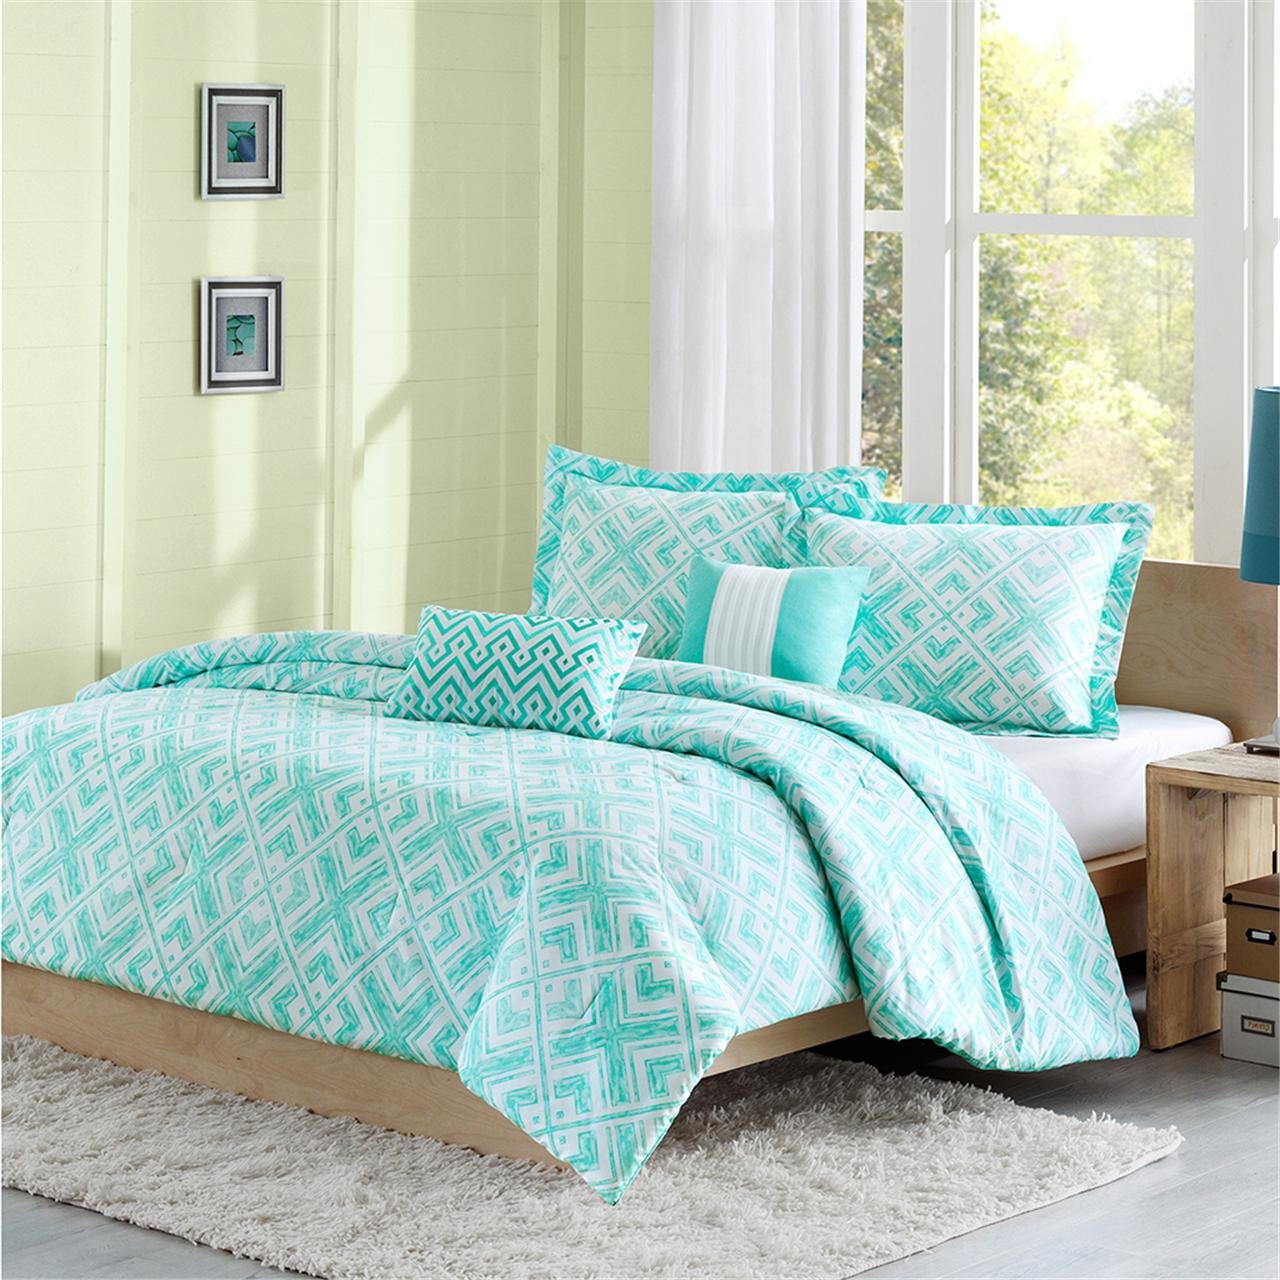 studio queen jericho bedding full piece set sets teal comforter p